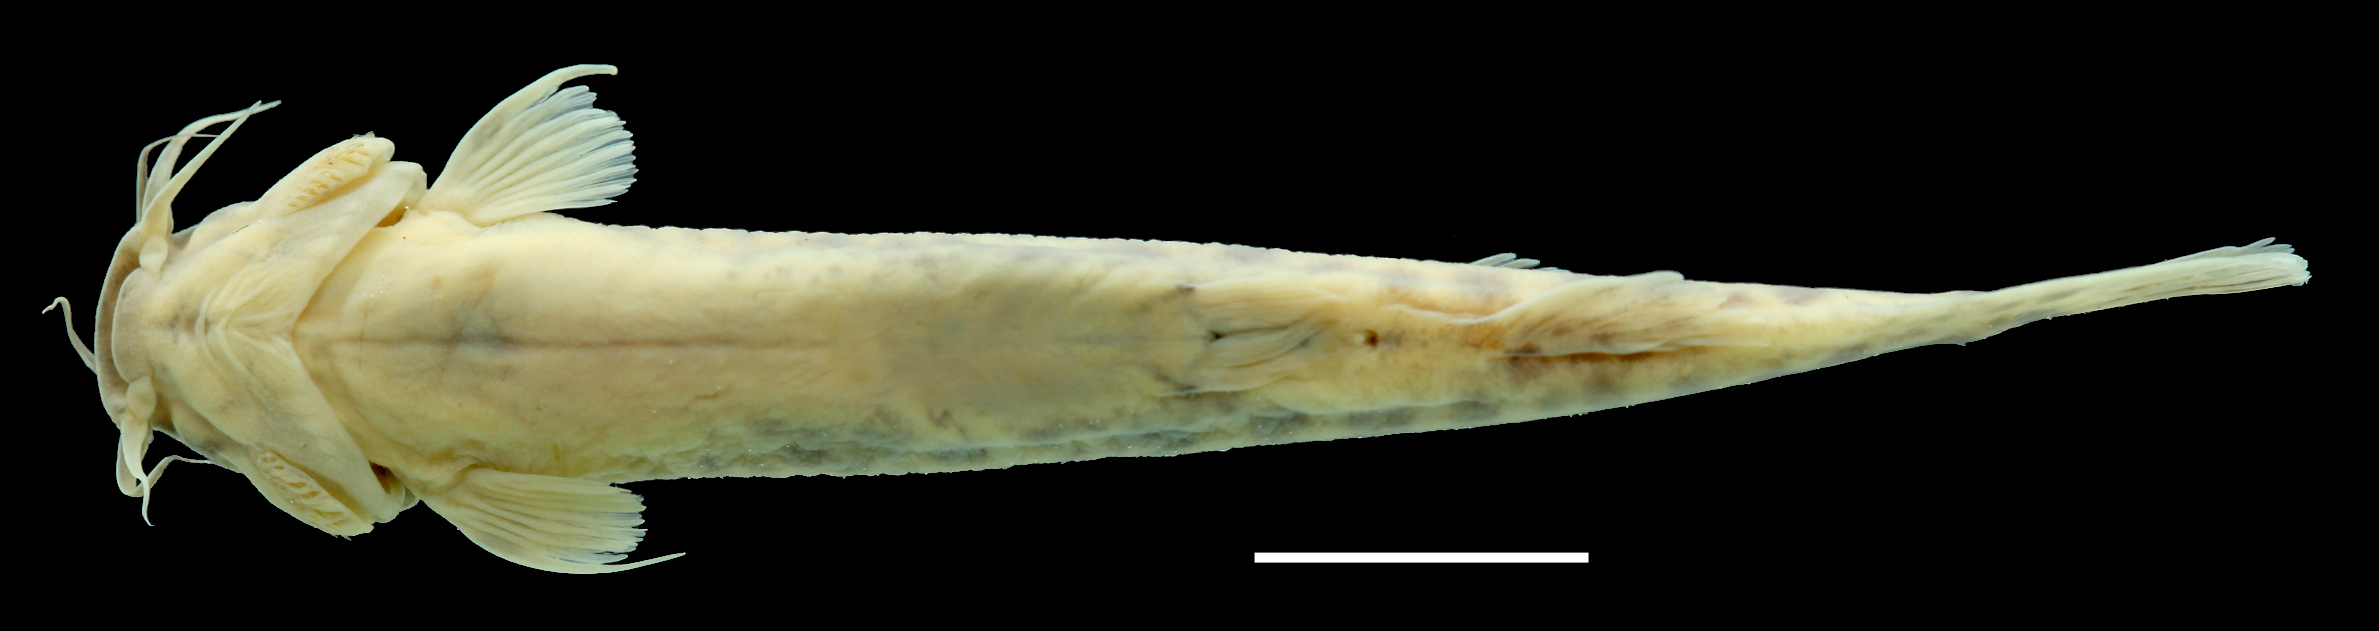 Paratype of <em>Trichomycterus ocanaensis</em>, IAvH-P-11115_Ventral, 57.2 mm SL (scale bar = 1 cm). Photograph by C. DoNascimiento